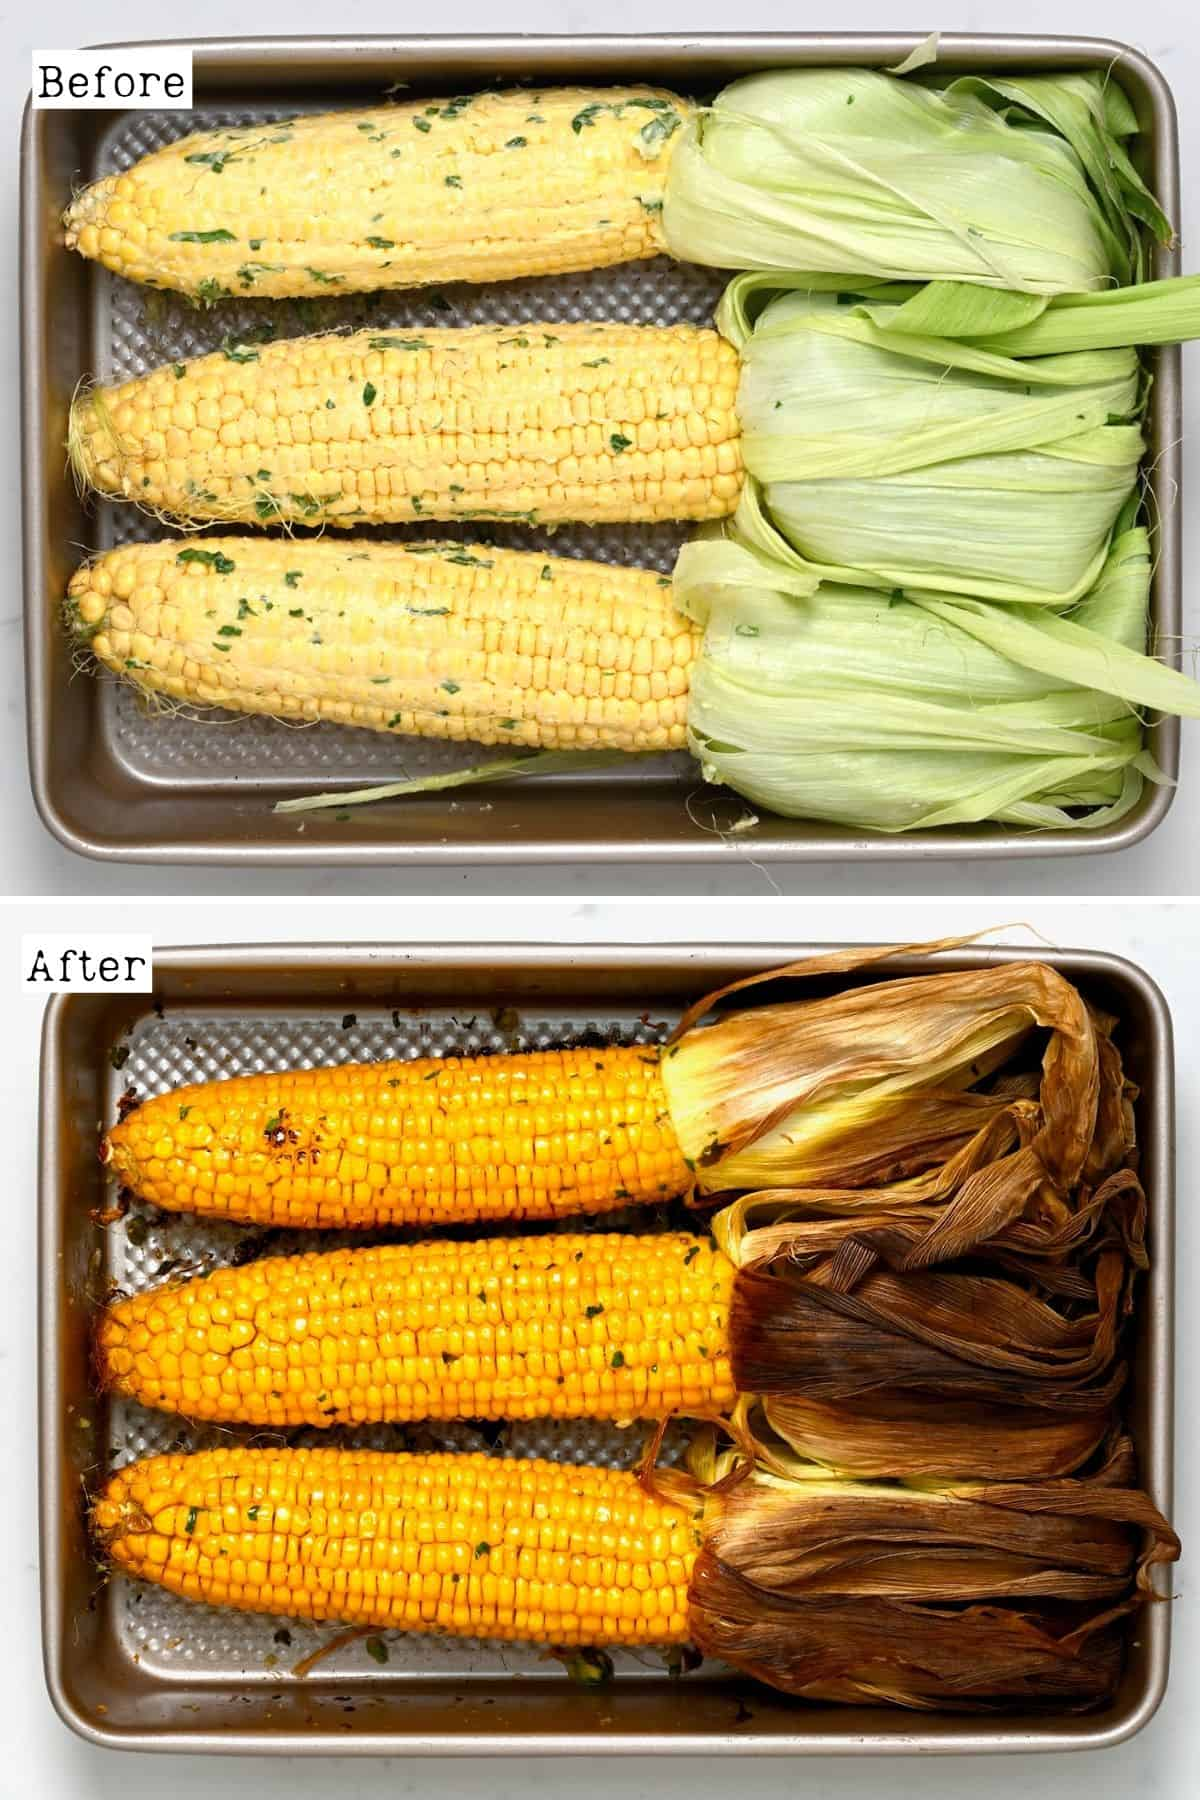 Before and after roasting corn